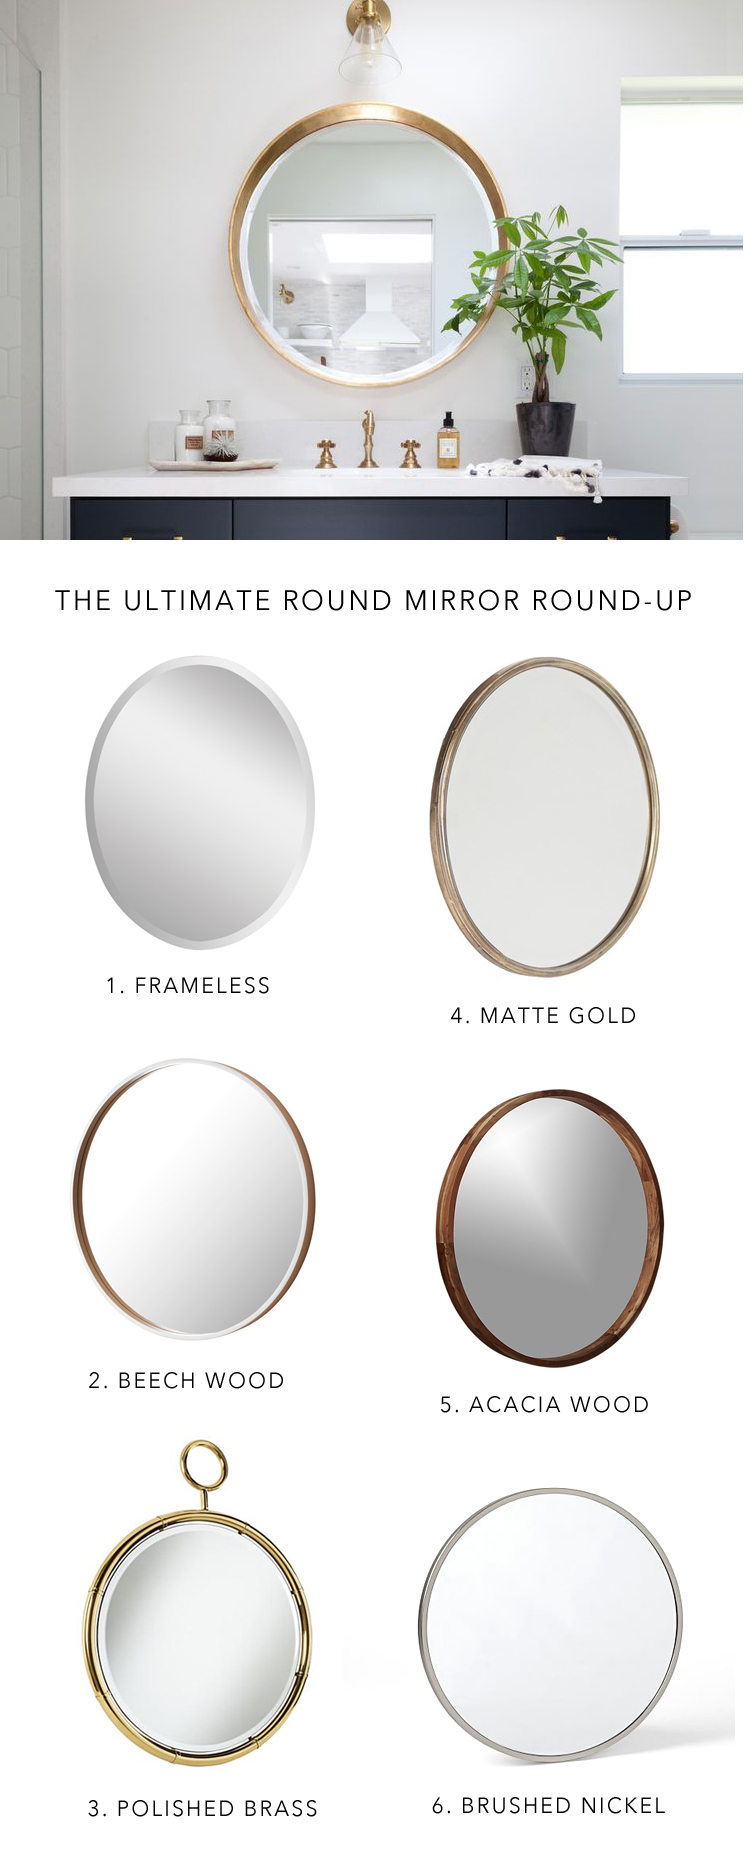 instantly update your bathroom decor for 2016 with a round bathroom mirror || @citysage